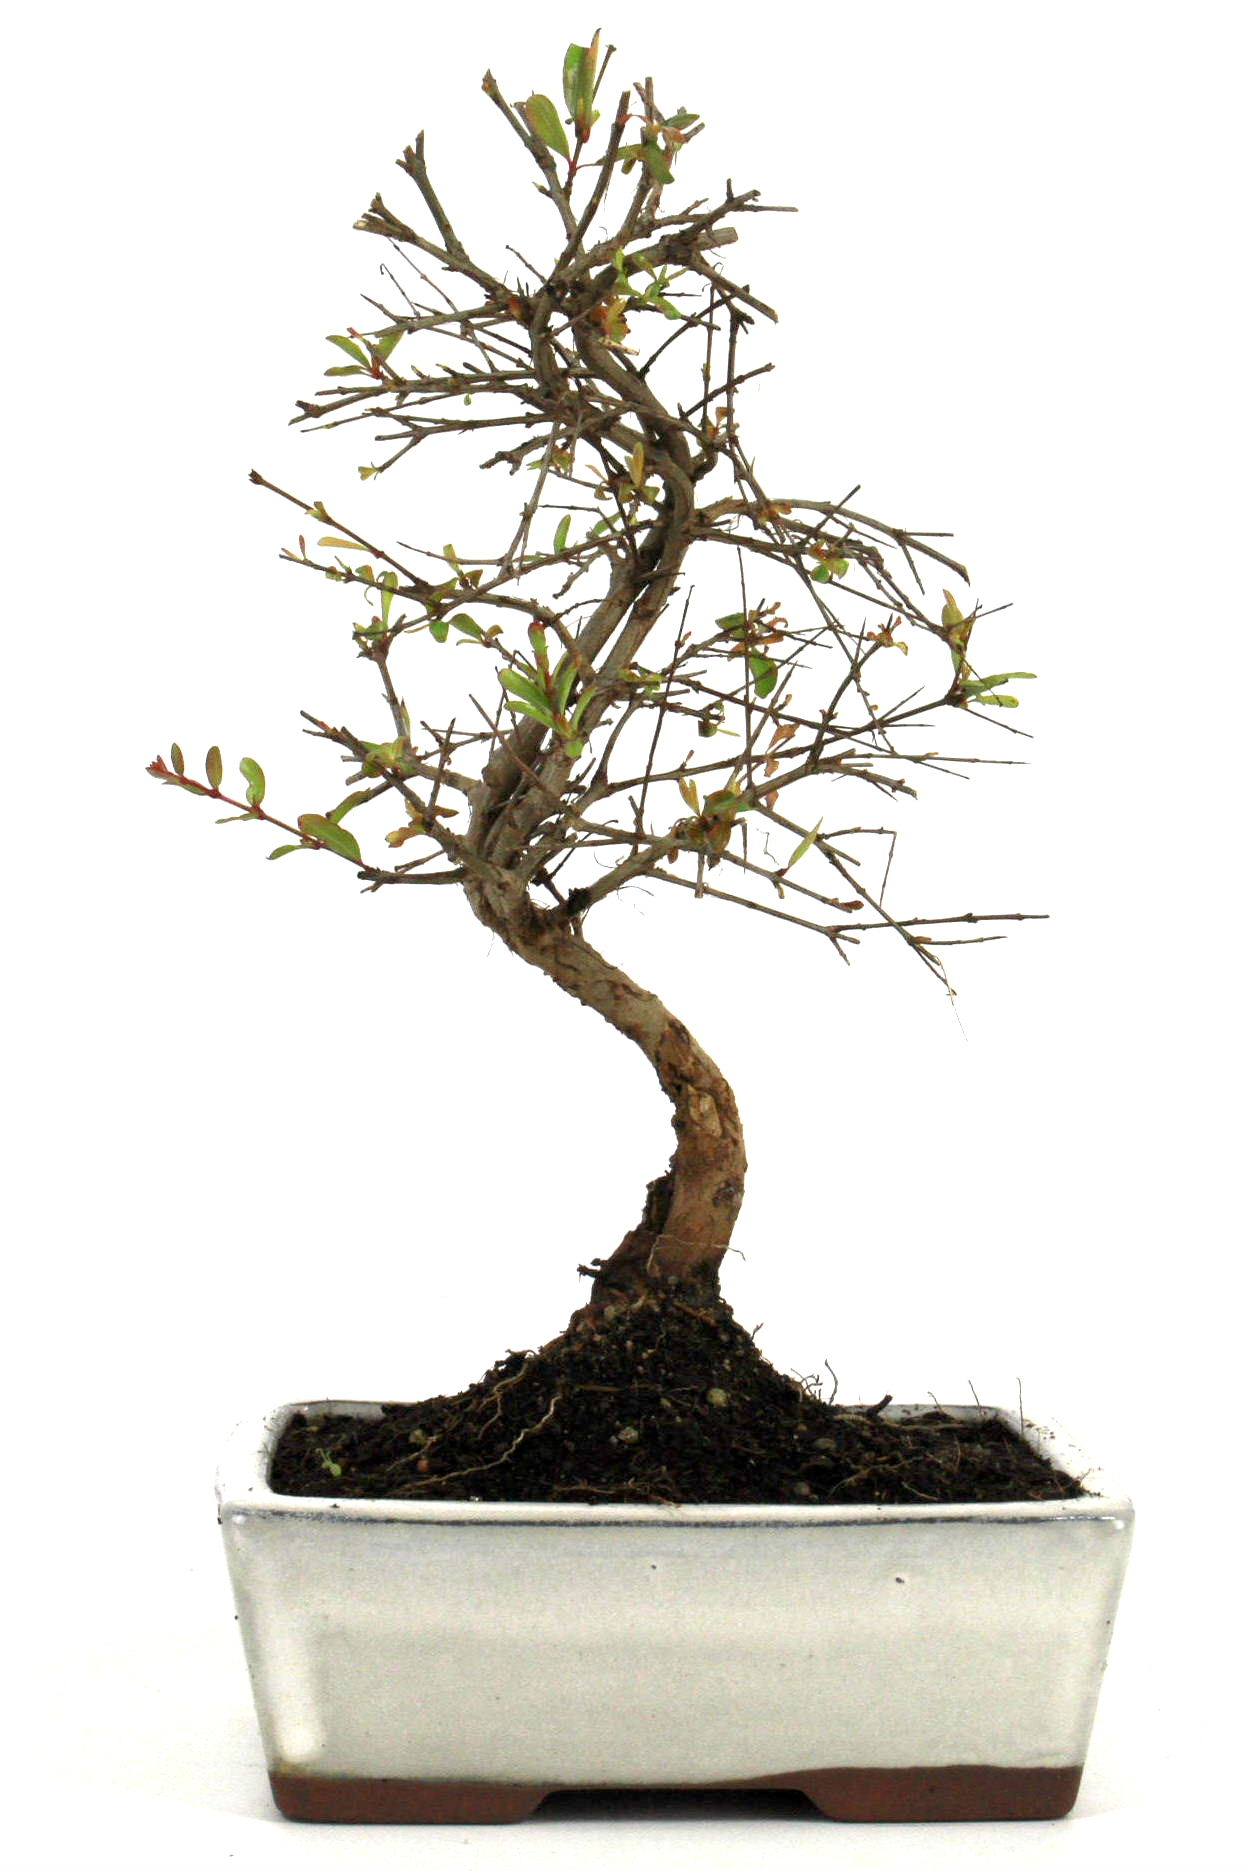 Granatapfel bonsai 25 30 cm 169 bei oyaki bonsai kaufen for Bonsai onlineshop